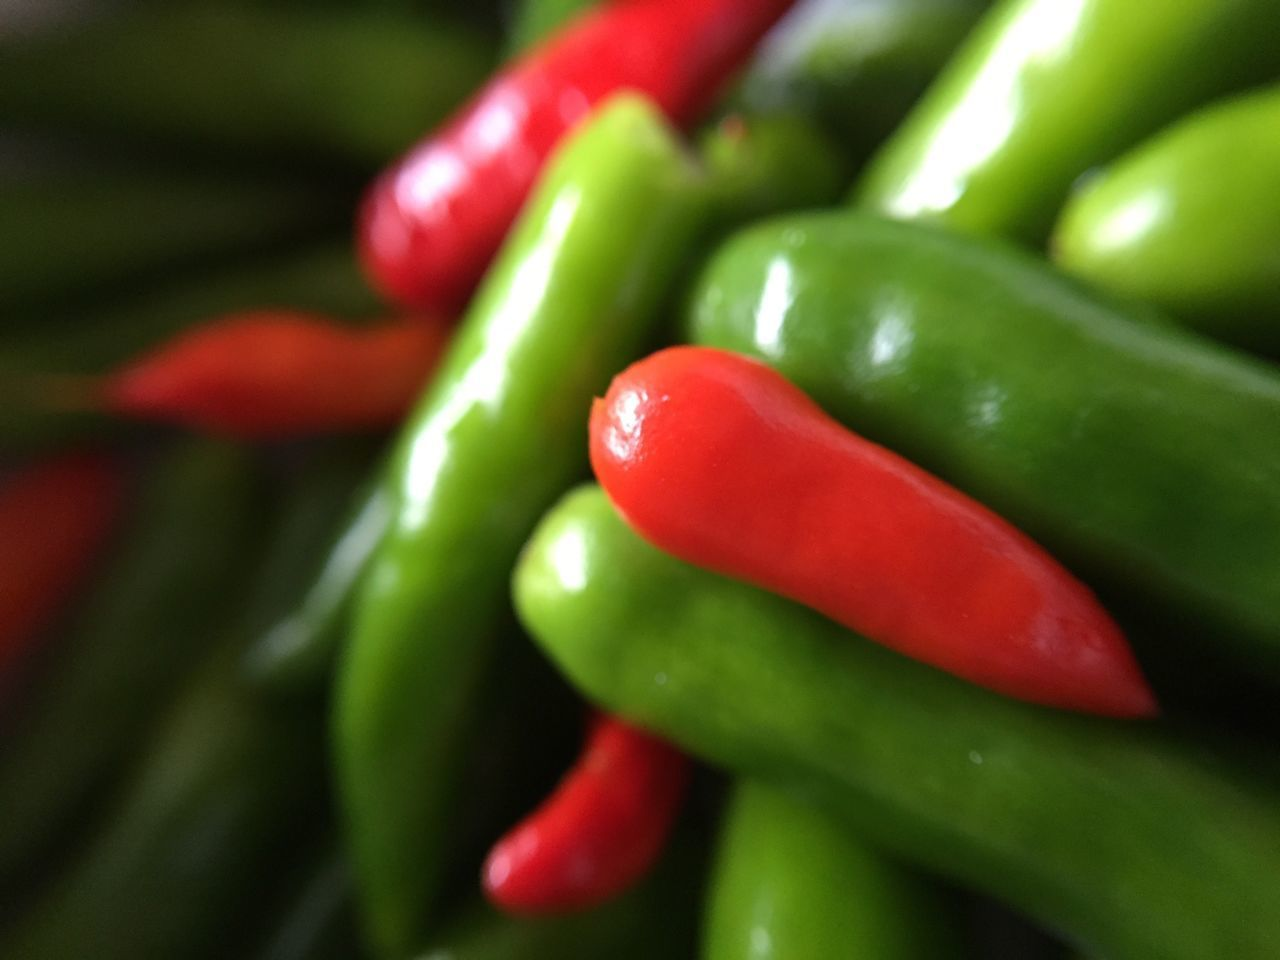 Freshness Vegetable Red Food And Drink Food Close-up Green Color Healthy Eating Chili Pepper No People Red Chili Pepper Red Bell Pepper Green Chili Pepper Backgrounds Day